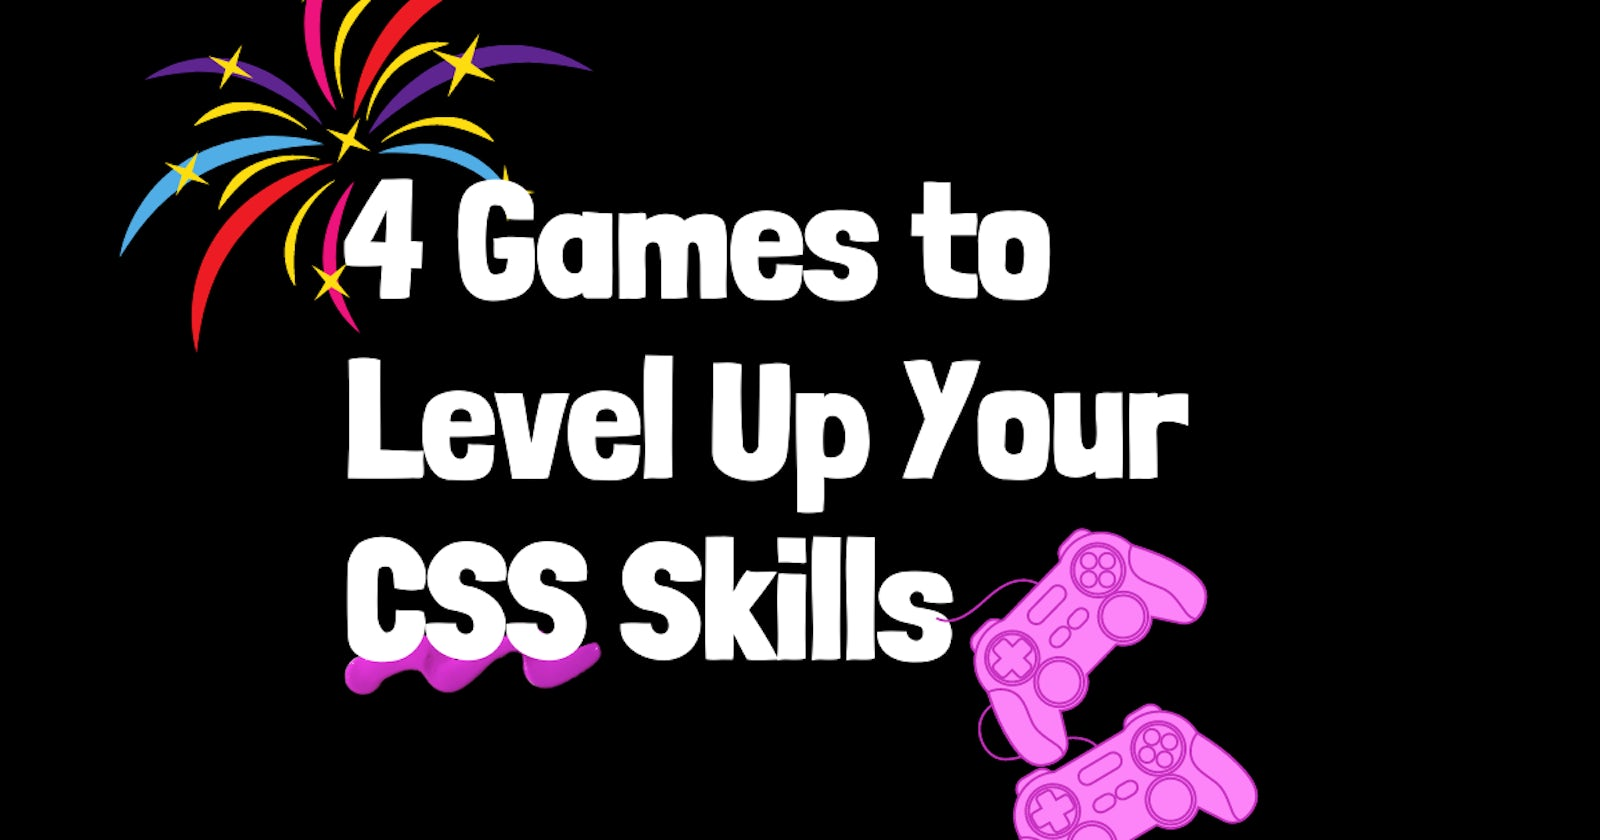 4 Games to Level Up Your CSS Skills